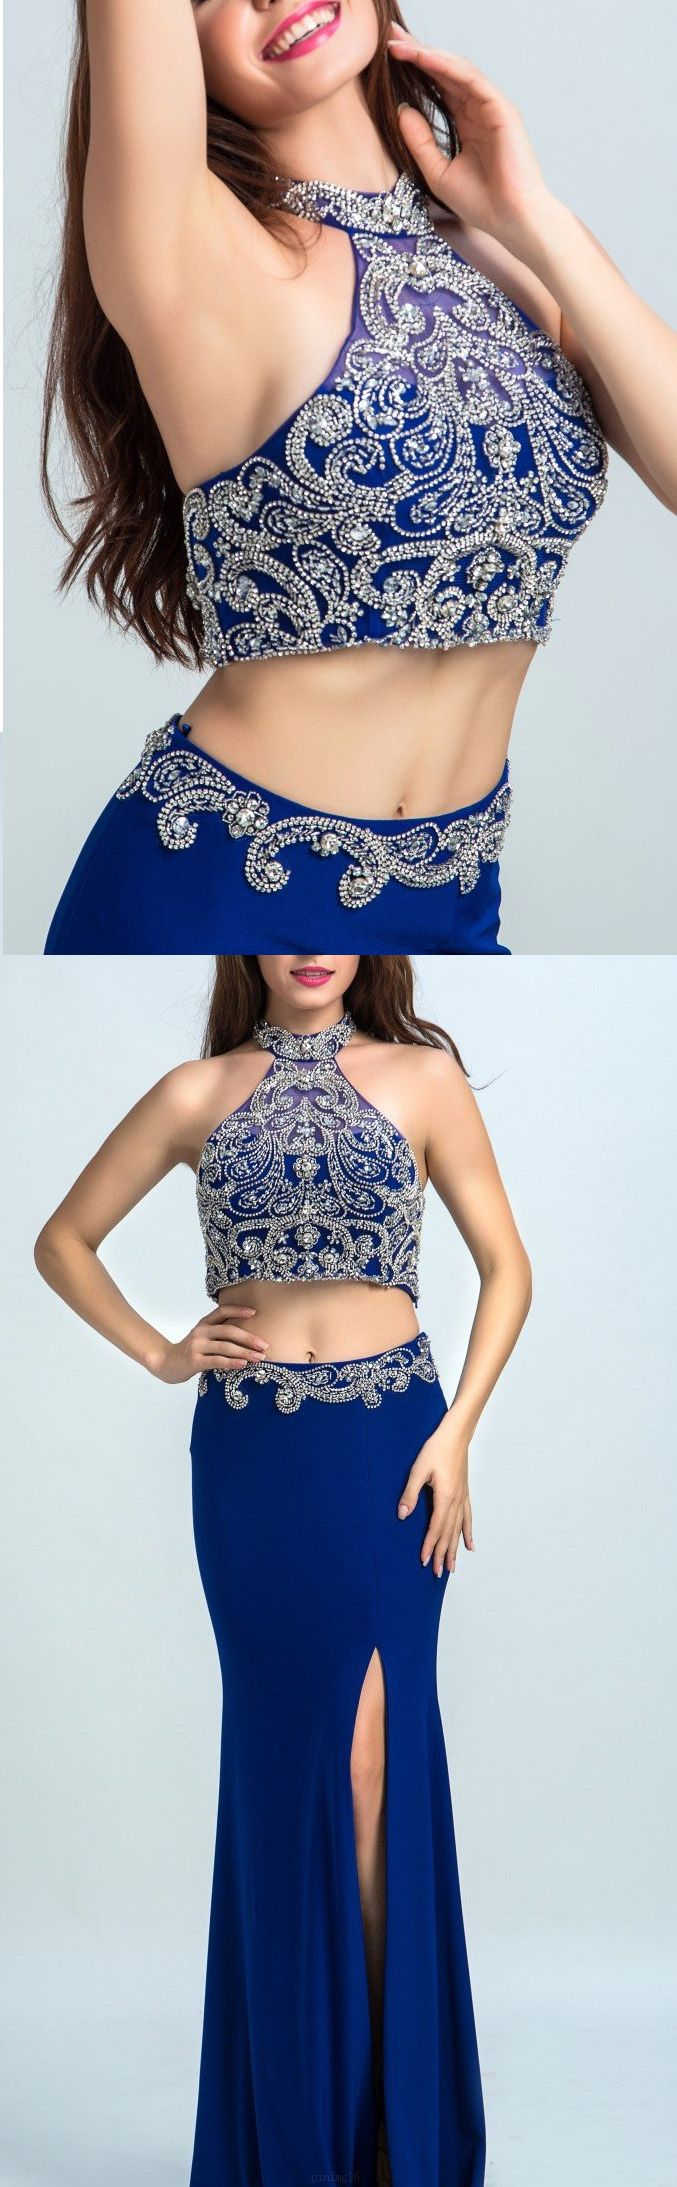 Two Piece Prom Dresses, Blue Prom Dresses, Royal Blue Prom Dresses, Backless Prom Dresses, Princess Prom Dresses, Prom Dresses Blue, Prom Dresses Royal Blue, Two Piece Dresses, Royal Blue dresses, A Line dresses, Backless Evening Dresses, Rhinestone Prom Dresses, Floor-length Prom Dresses, A-line/Princess Evening Dresses